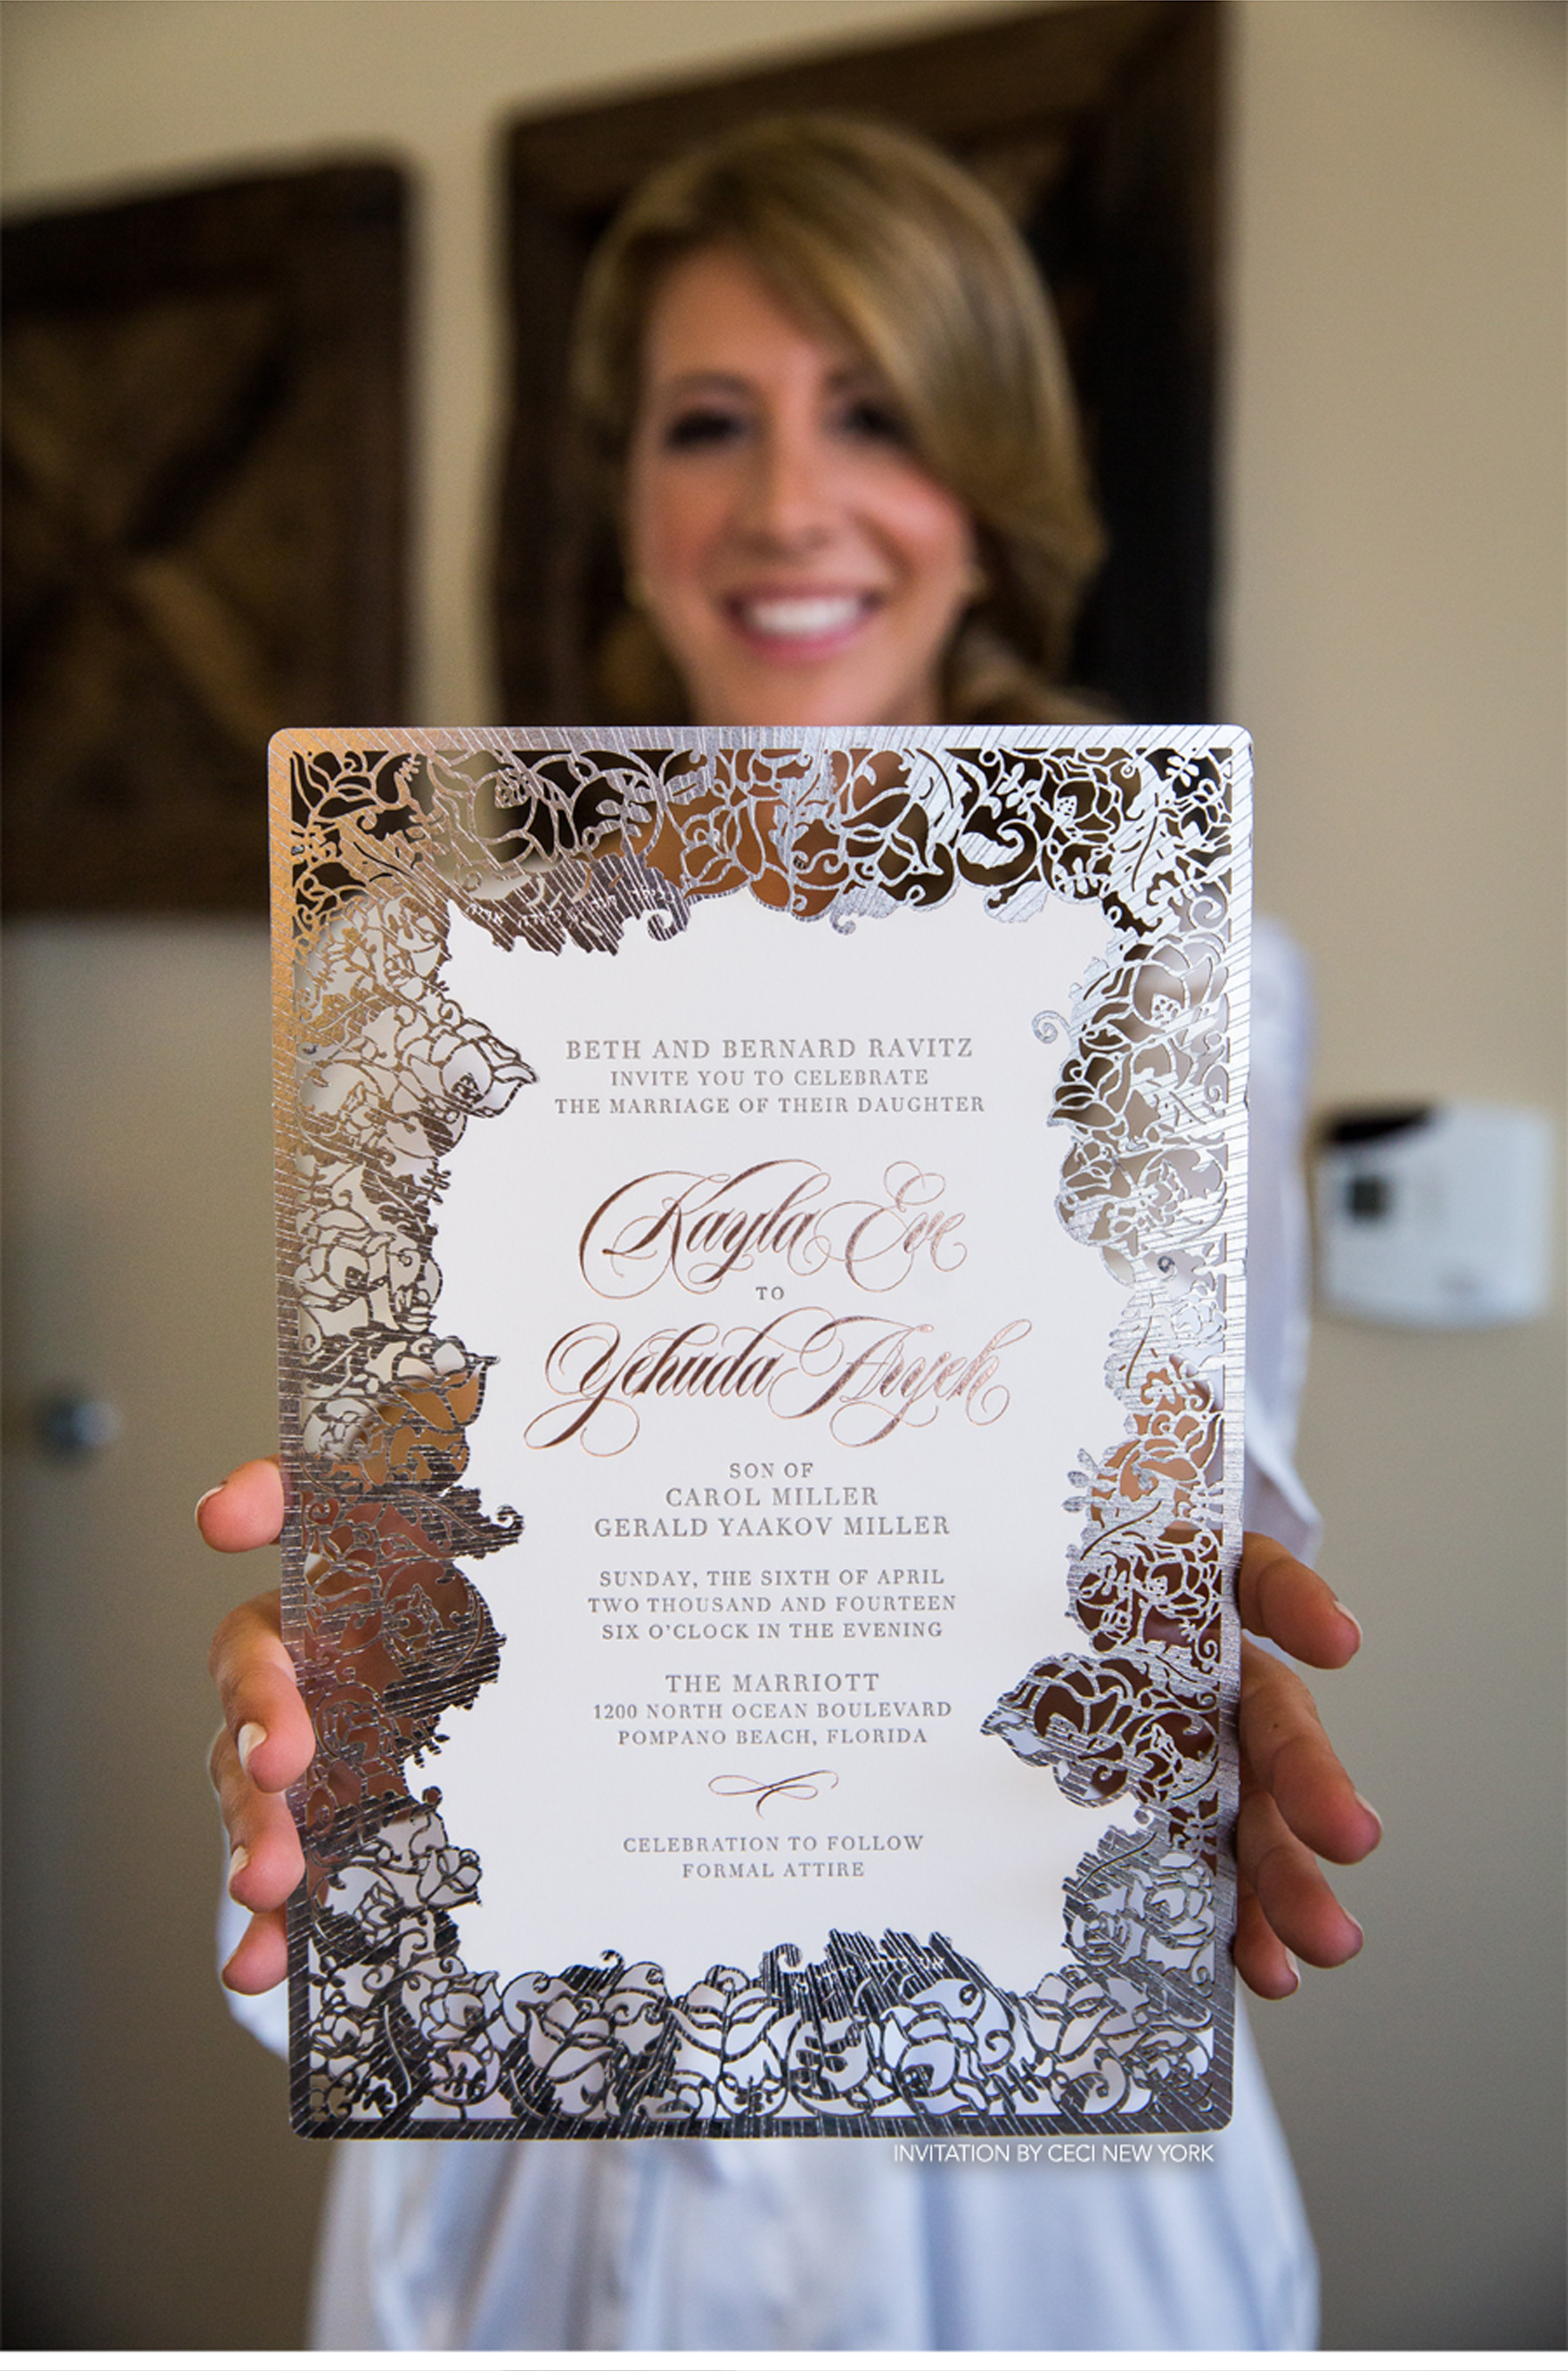 Our Muse - Blush and Pewter Wedding - Be inspired by Kayla and Hudi's blush-and-pewter wedding in Pompano Beach, Florida - wedding, invitation, getting ready, wedding dress, sparkles, bridesmaid dresses, bride, groom, rose gold, wedding rings, ceci bride, first look, beach, lasercut